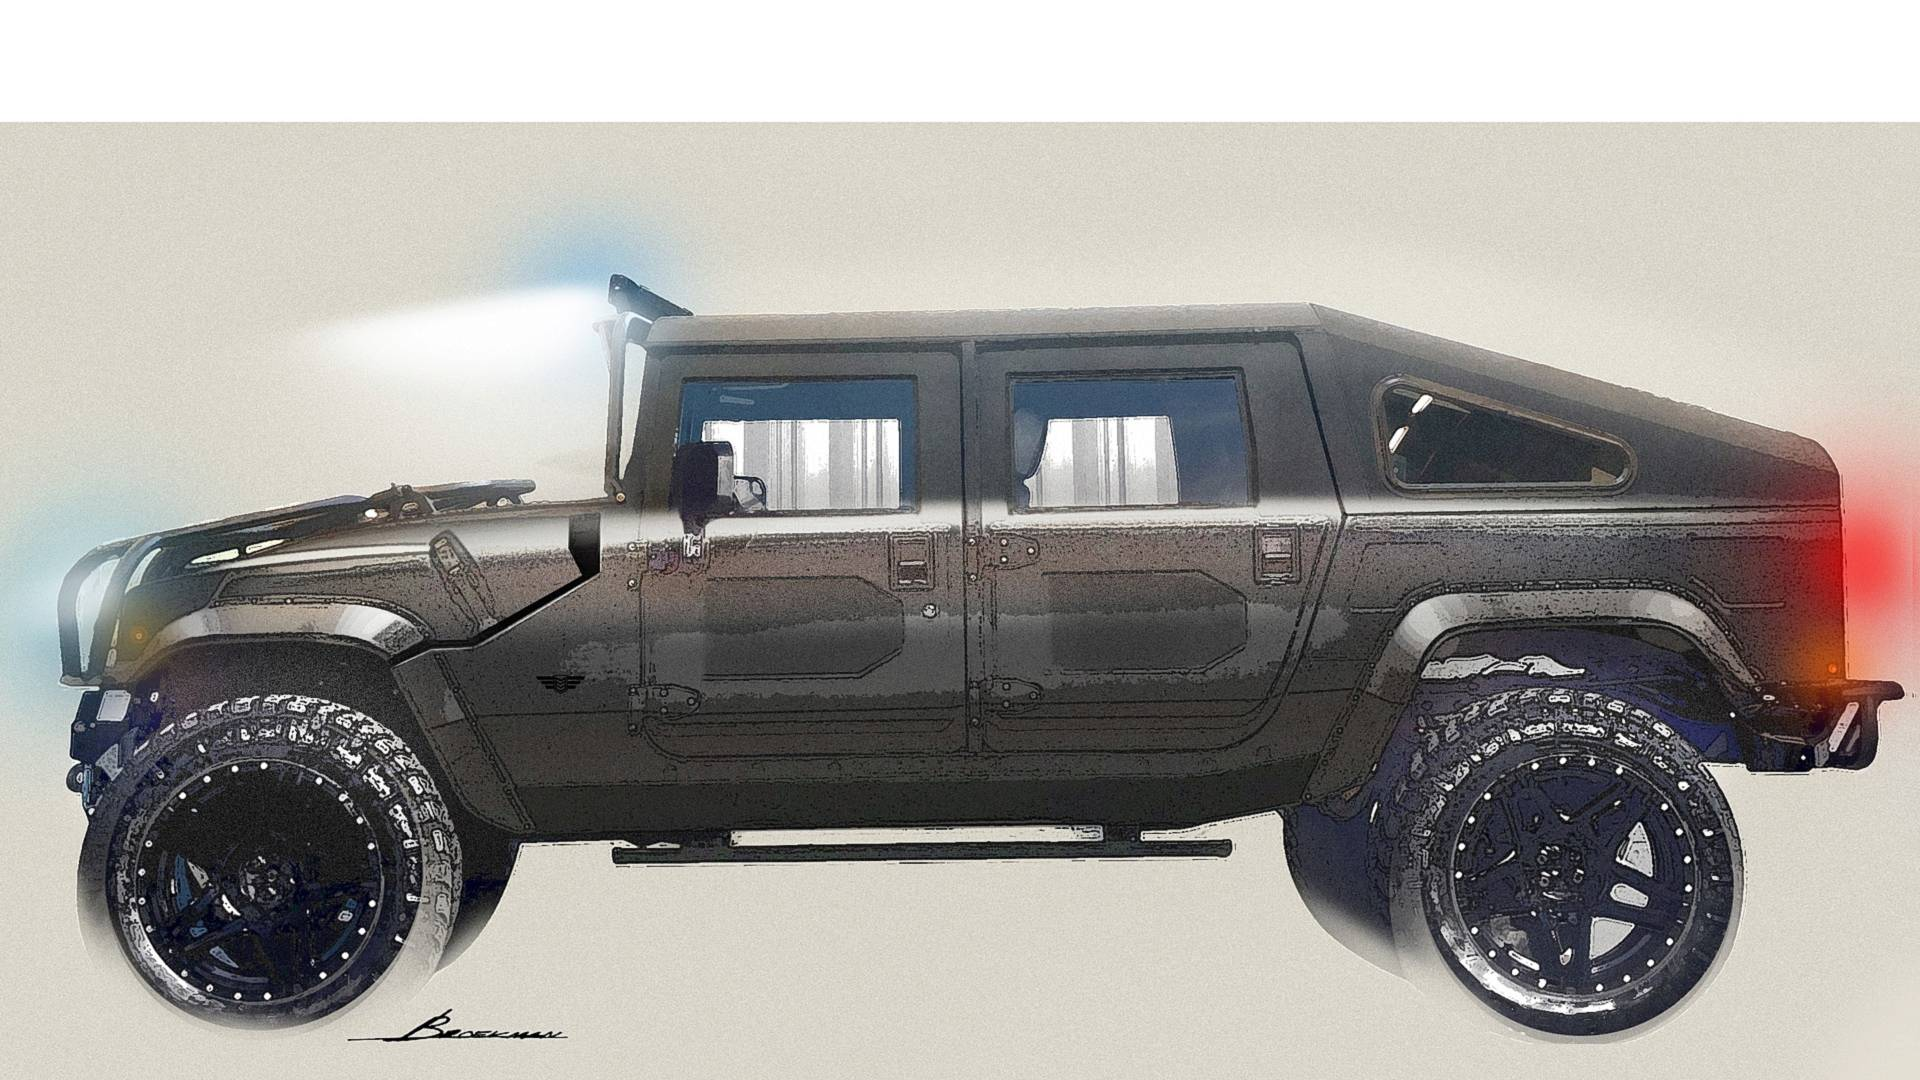 2019 Hummer H1 Price, Concept, Specs >> Mil Spec Releases Renderings Of Its Newest Hummer H1 Revival